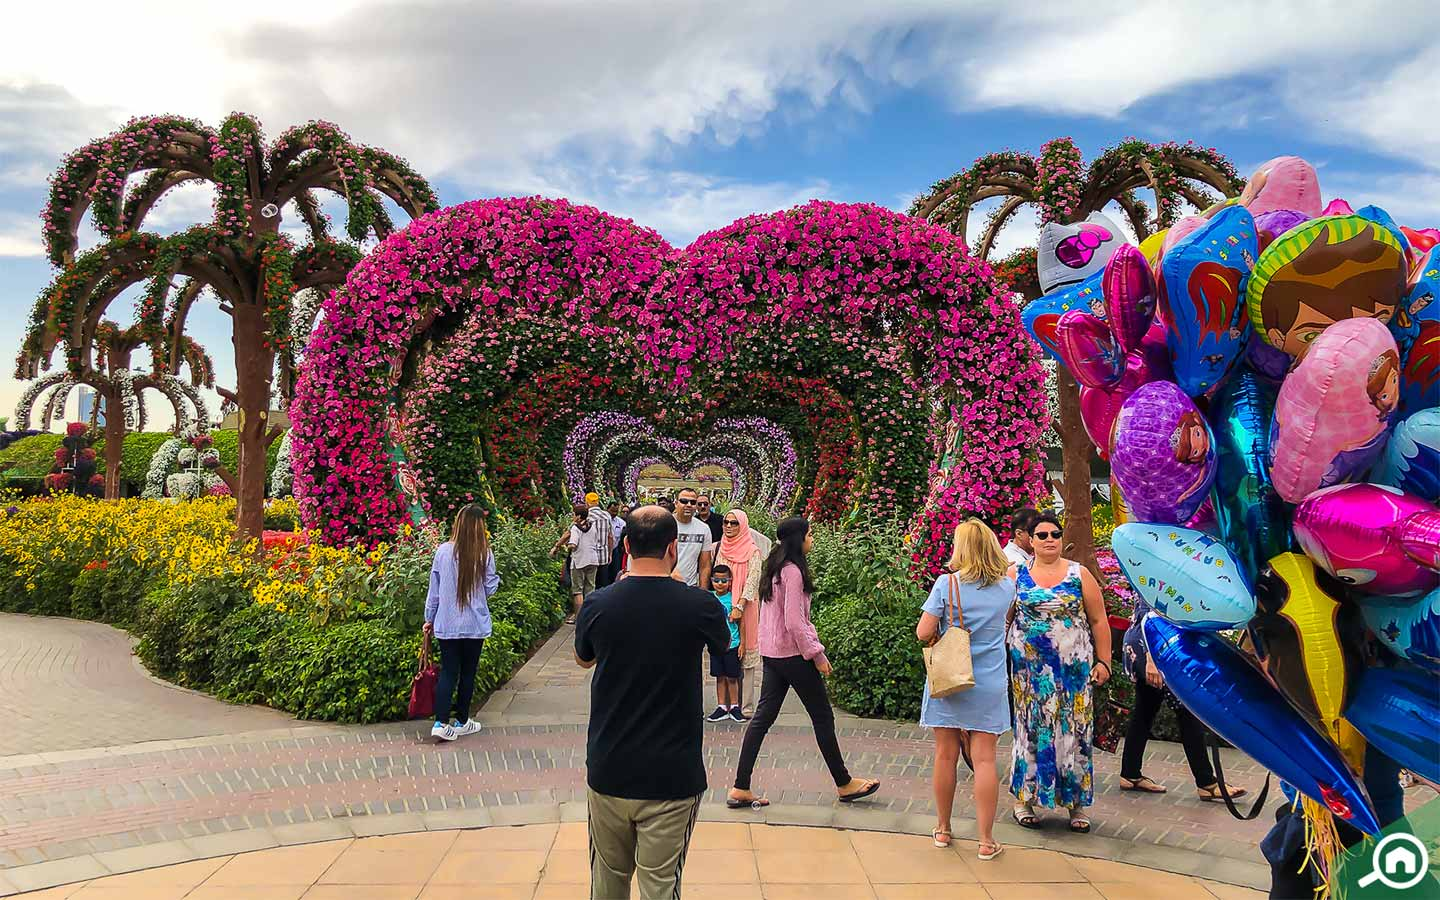 Heart shaped archways in Dubai Miracle Garden, one of the best spots for photoshoot in Dubai